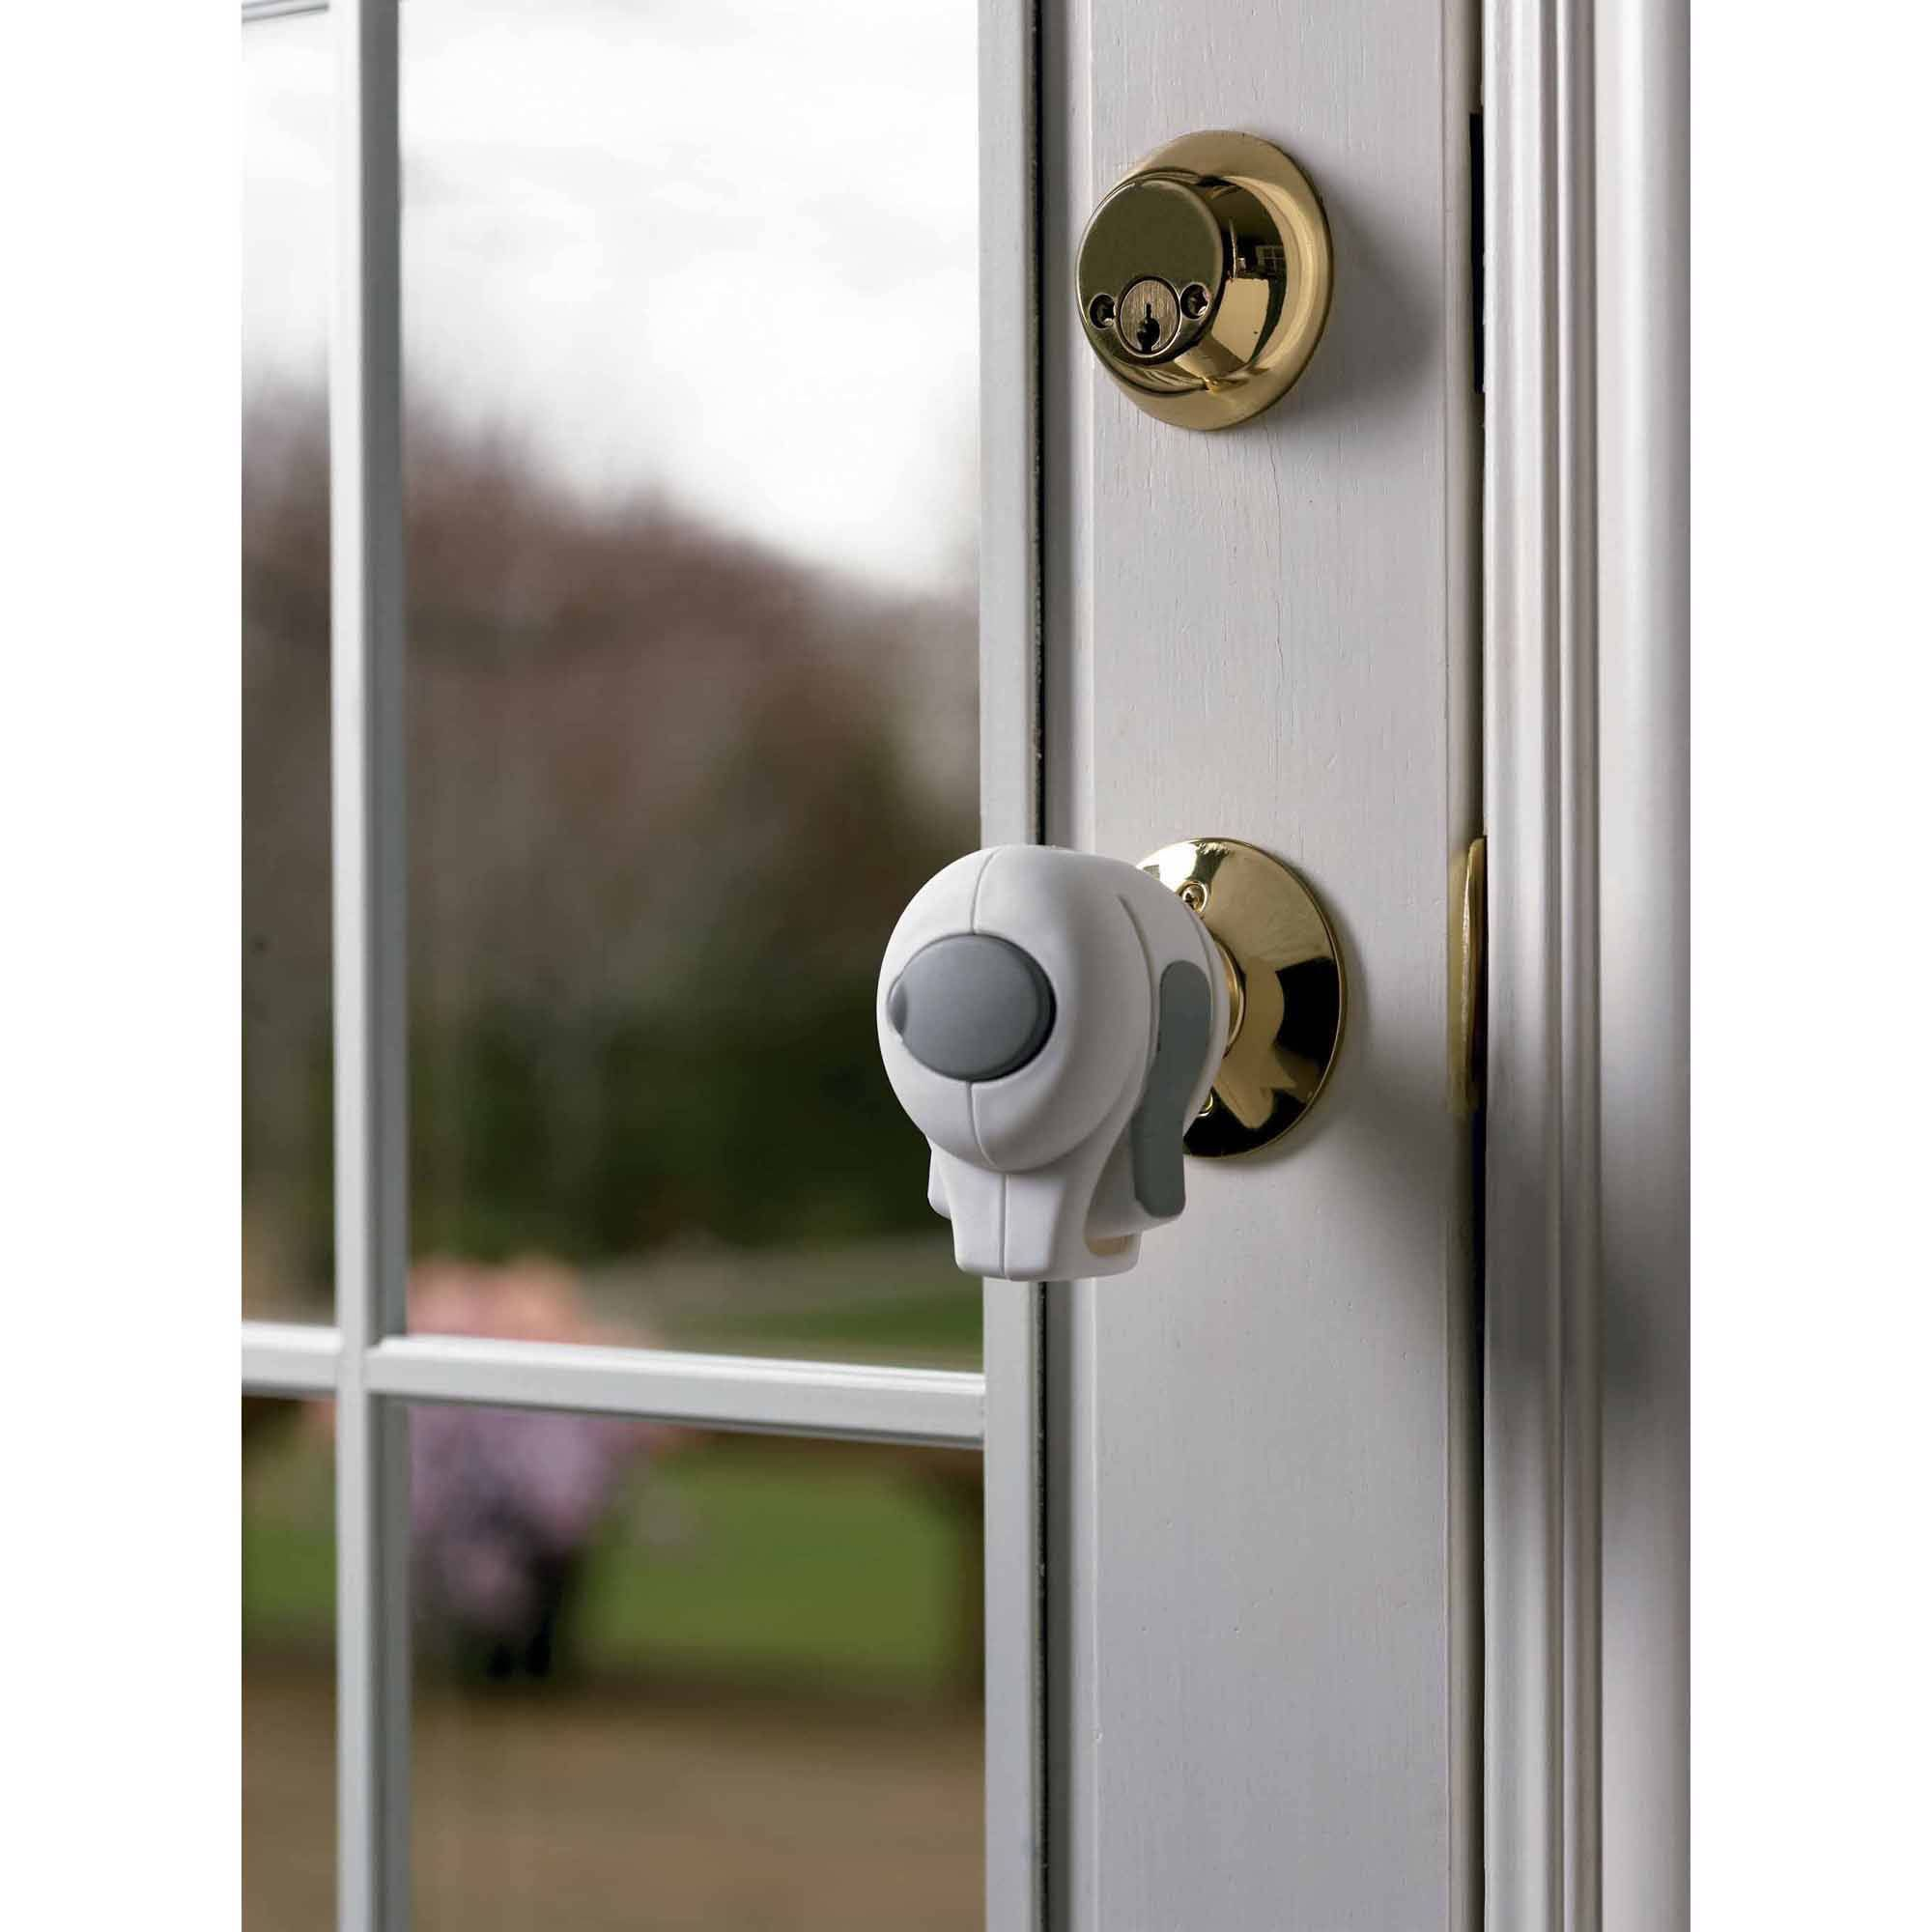 com doors best knobs covers pin pinterest safety retrocomputinggeek knob door